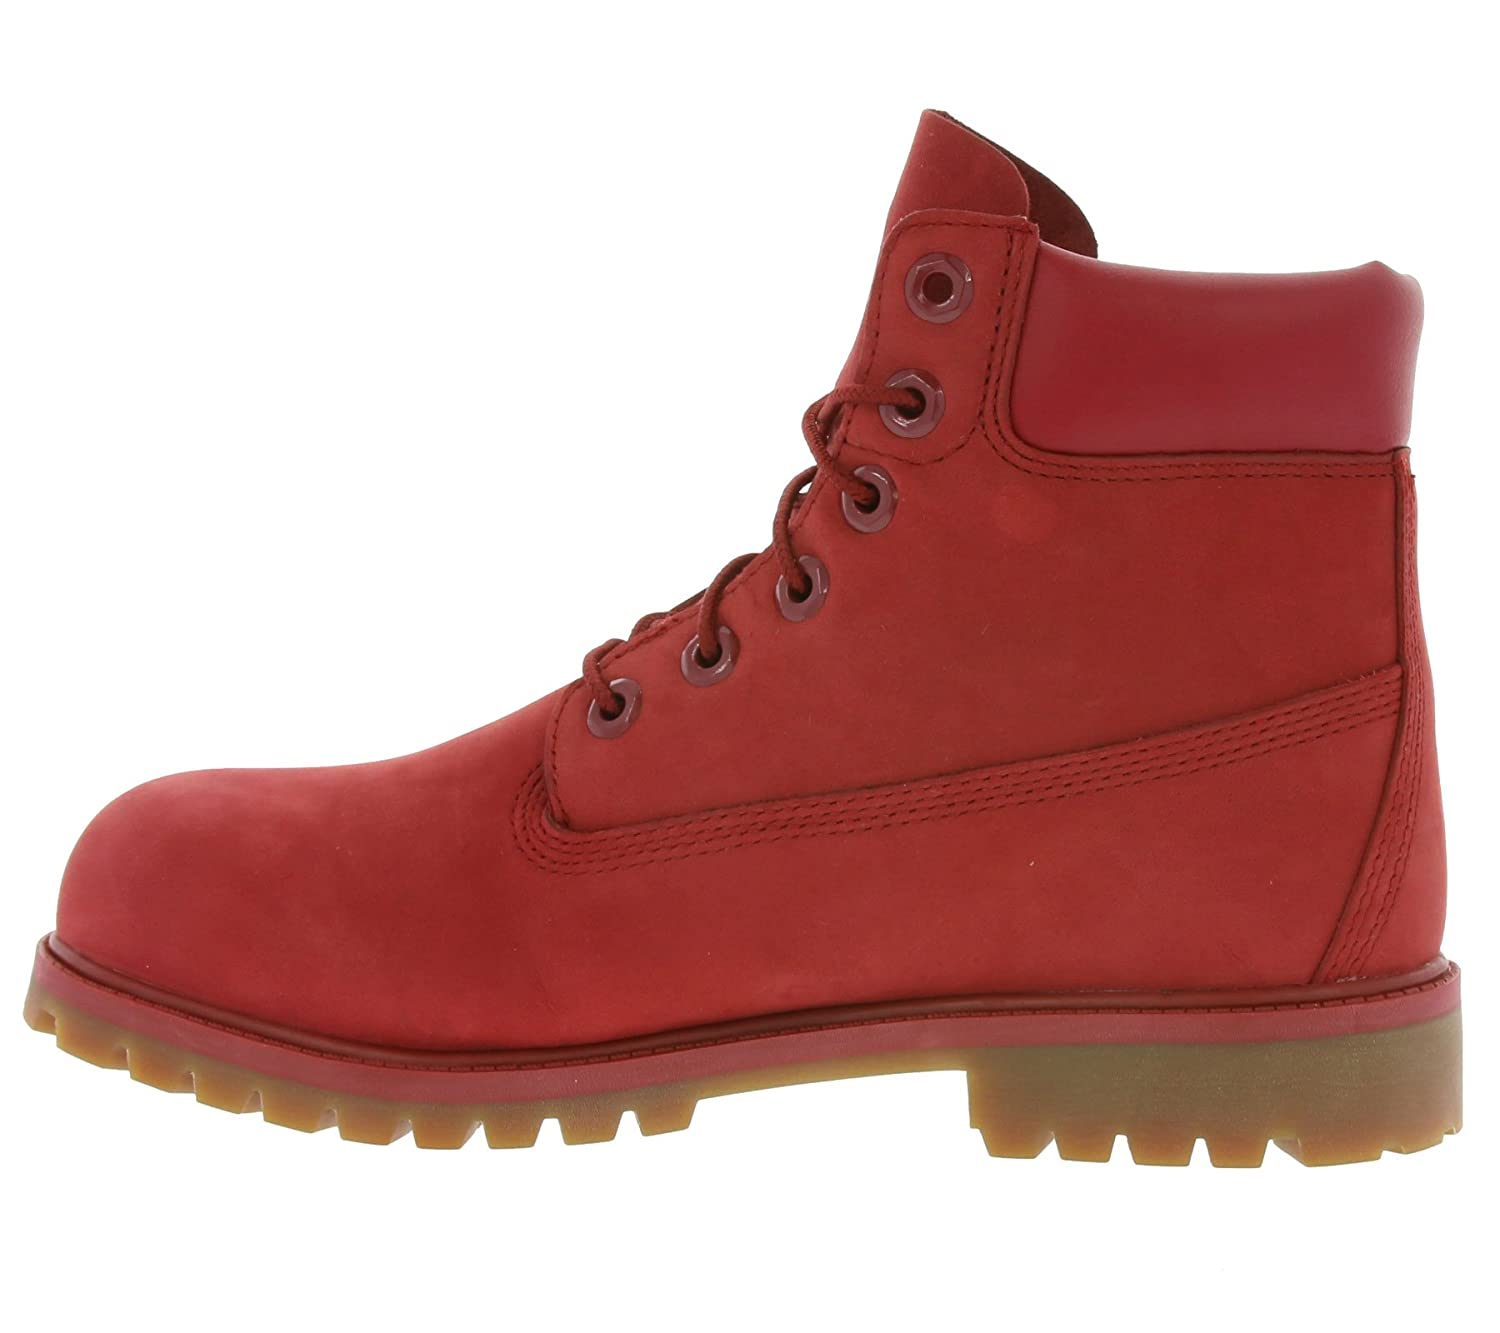 Timberland 6 in Classic Boot, Bottes et Bottines Classiques Mixte Enfant, Rouge (Red Nubuk Monochromatic 626), 39 EU